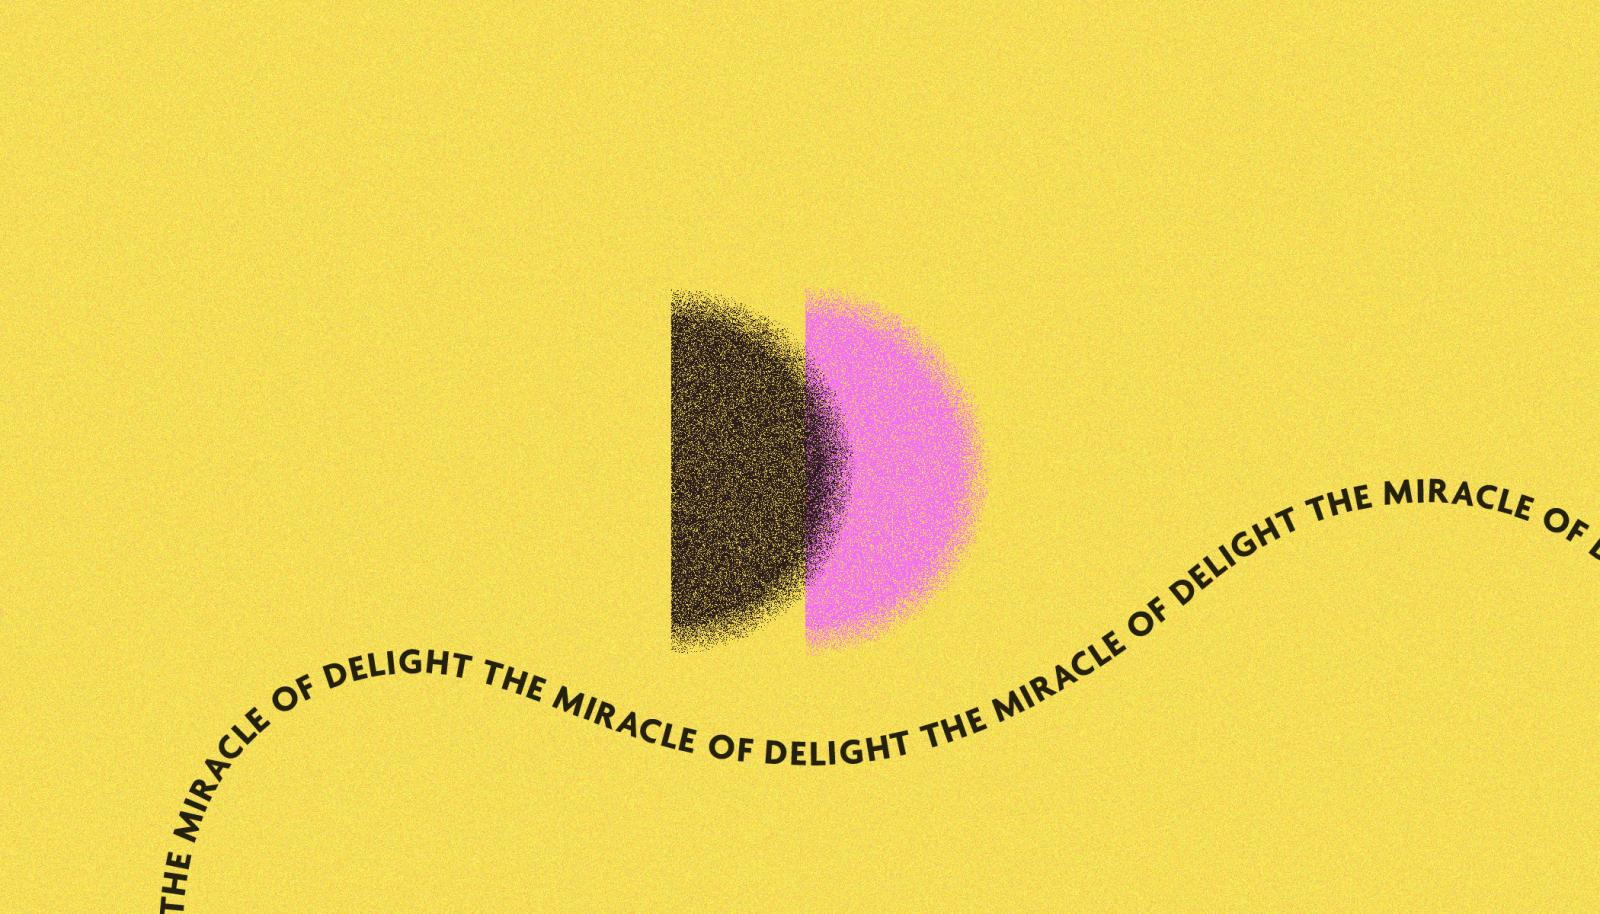 Photography image - Loading The-Daring-The-Miracle-Of-Delight.jpg